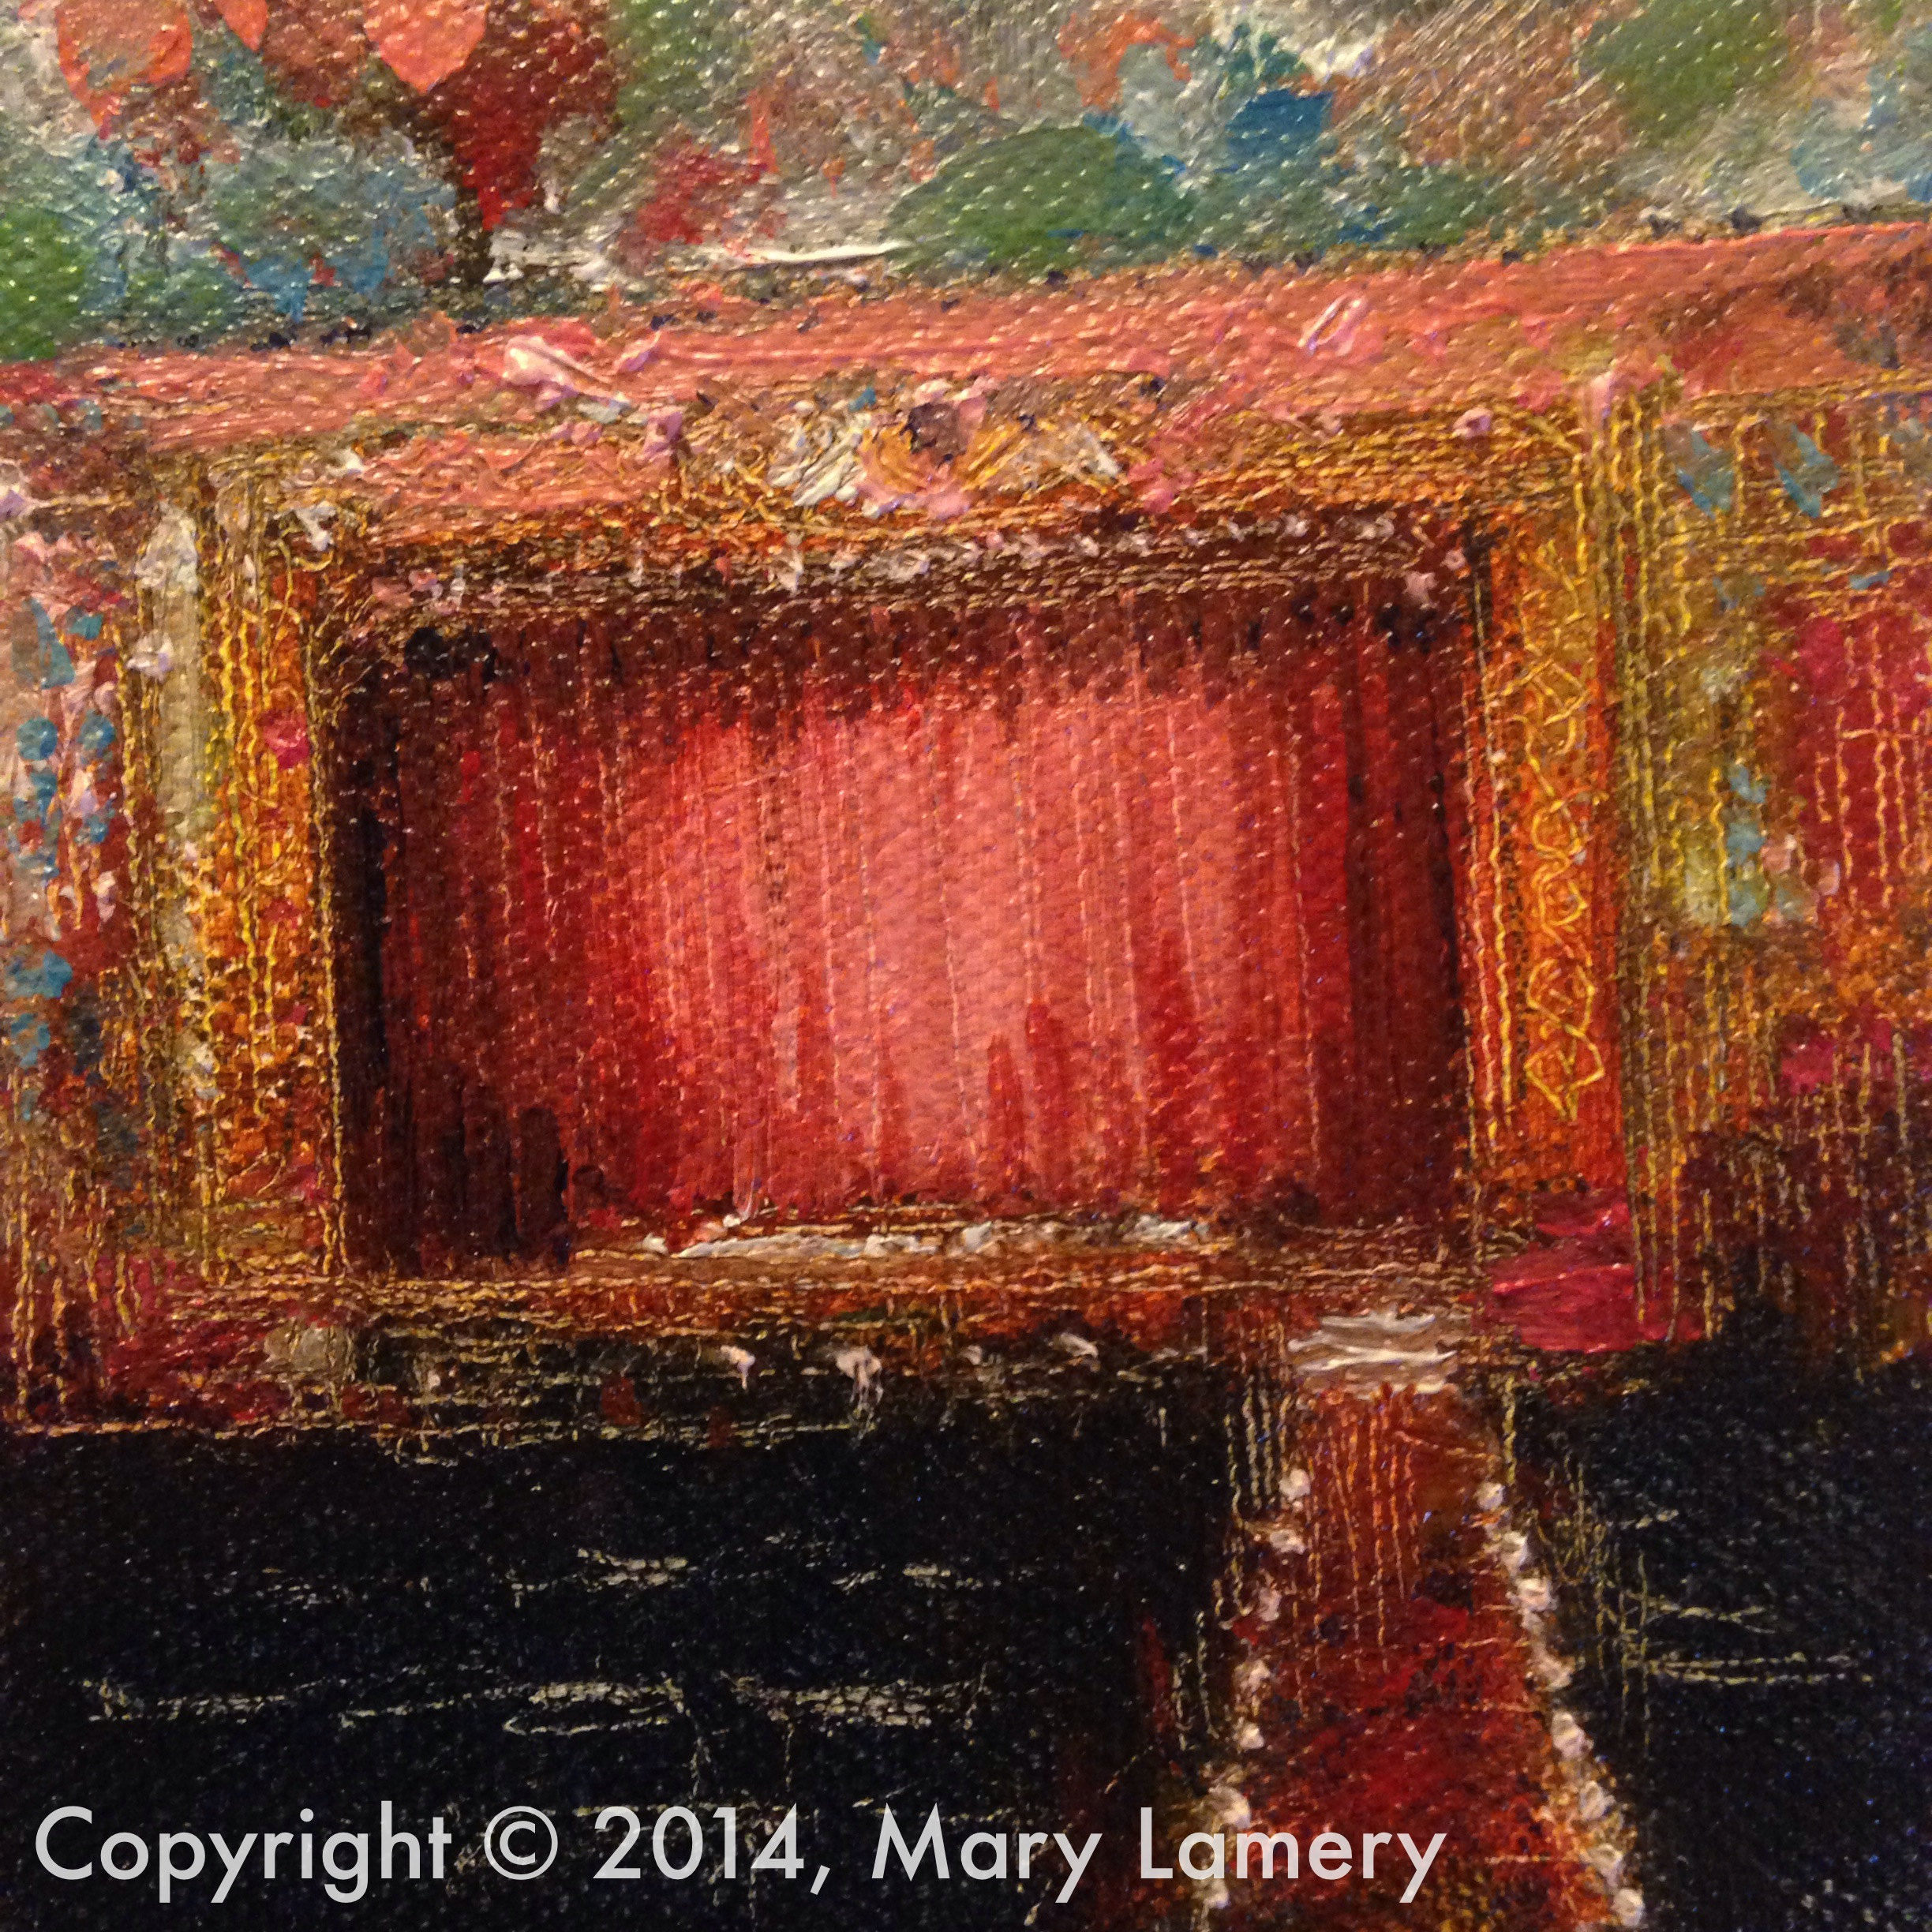 """Egyptian Theatre. 4""""x4"""". Oil on Canvas. 2014.   Day 44. October 14, 2014    """"You beautifullycaptured some of my most priceless, peaceful moments in my journey. I would patiently wait for hours so I could get """"my seat"""" and once I sat down """"ah, I'm here, let the journey begin""""."""